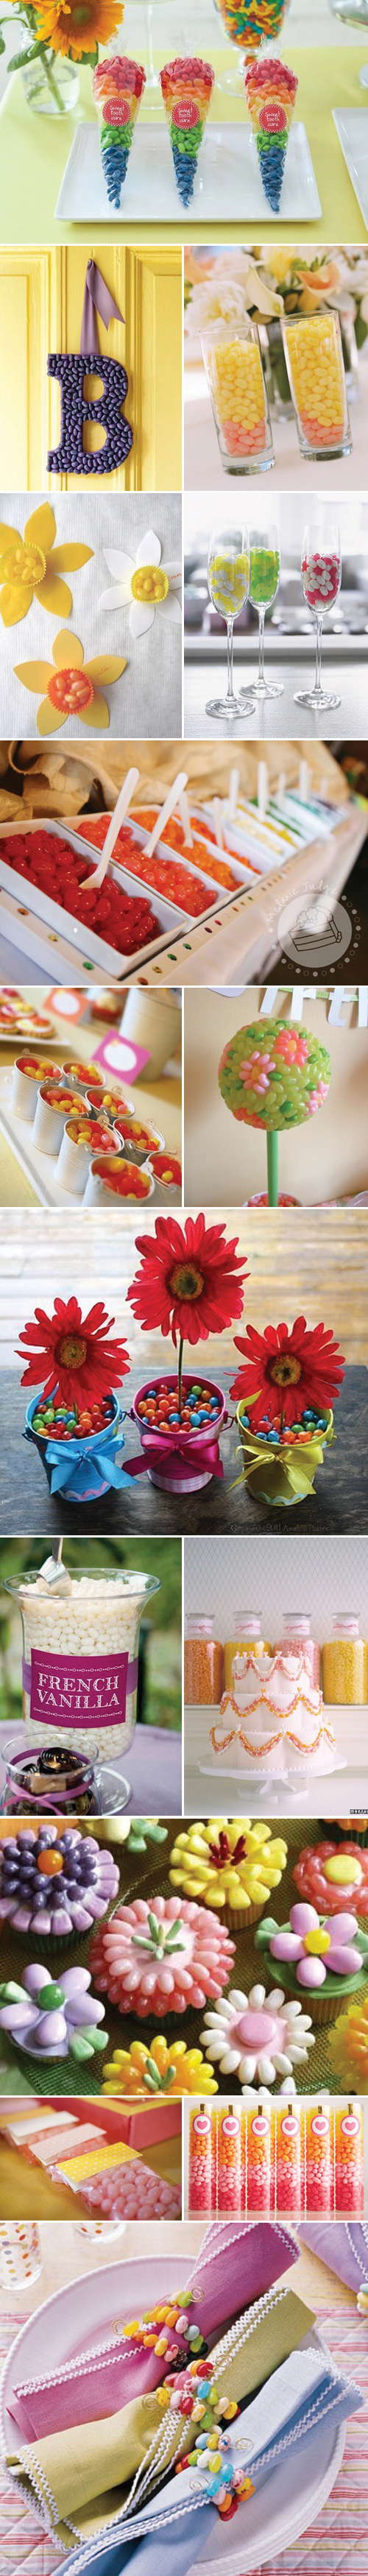 Jellybean Party Ideas, Easter